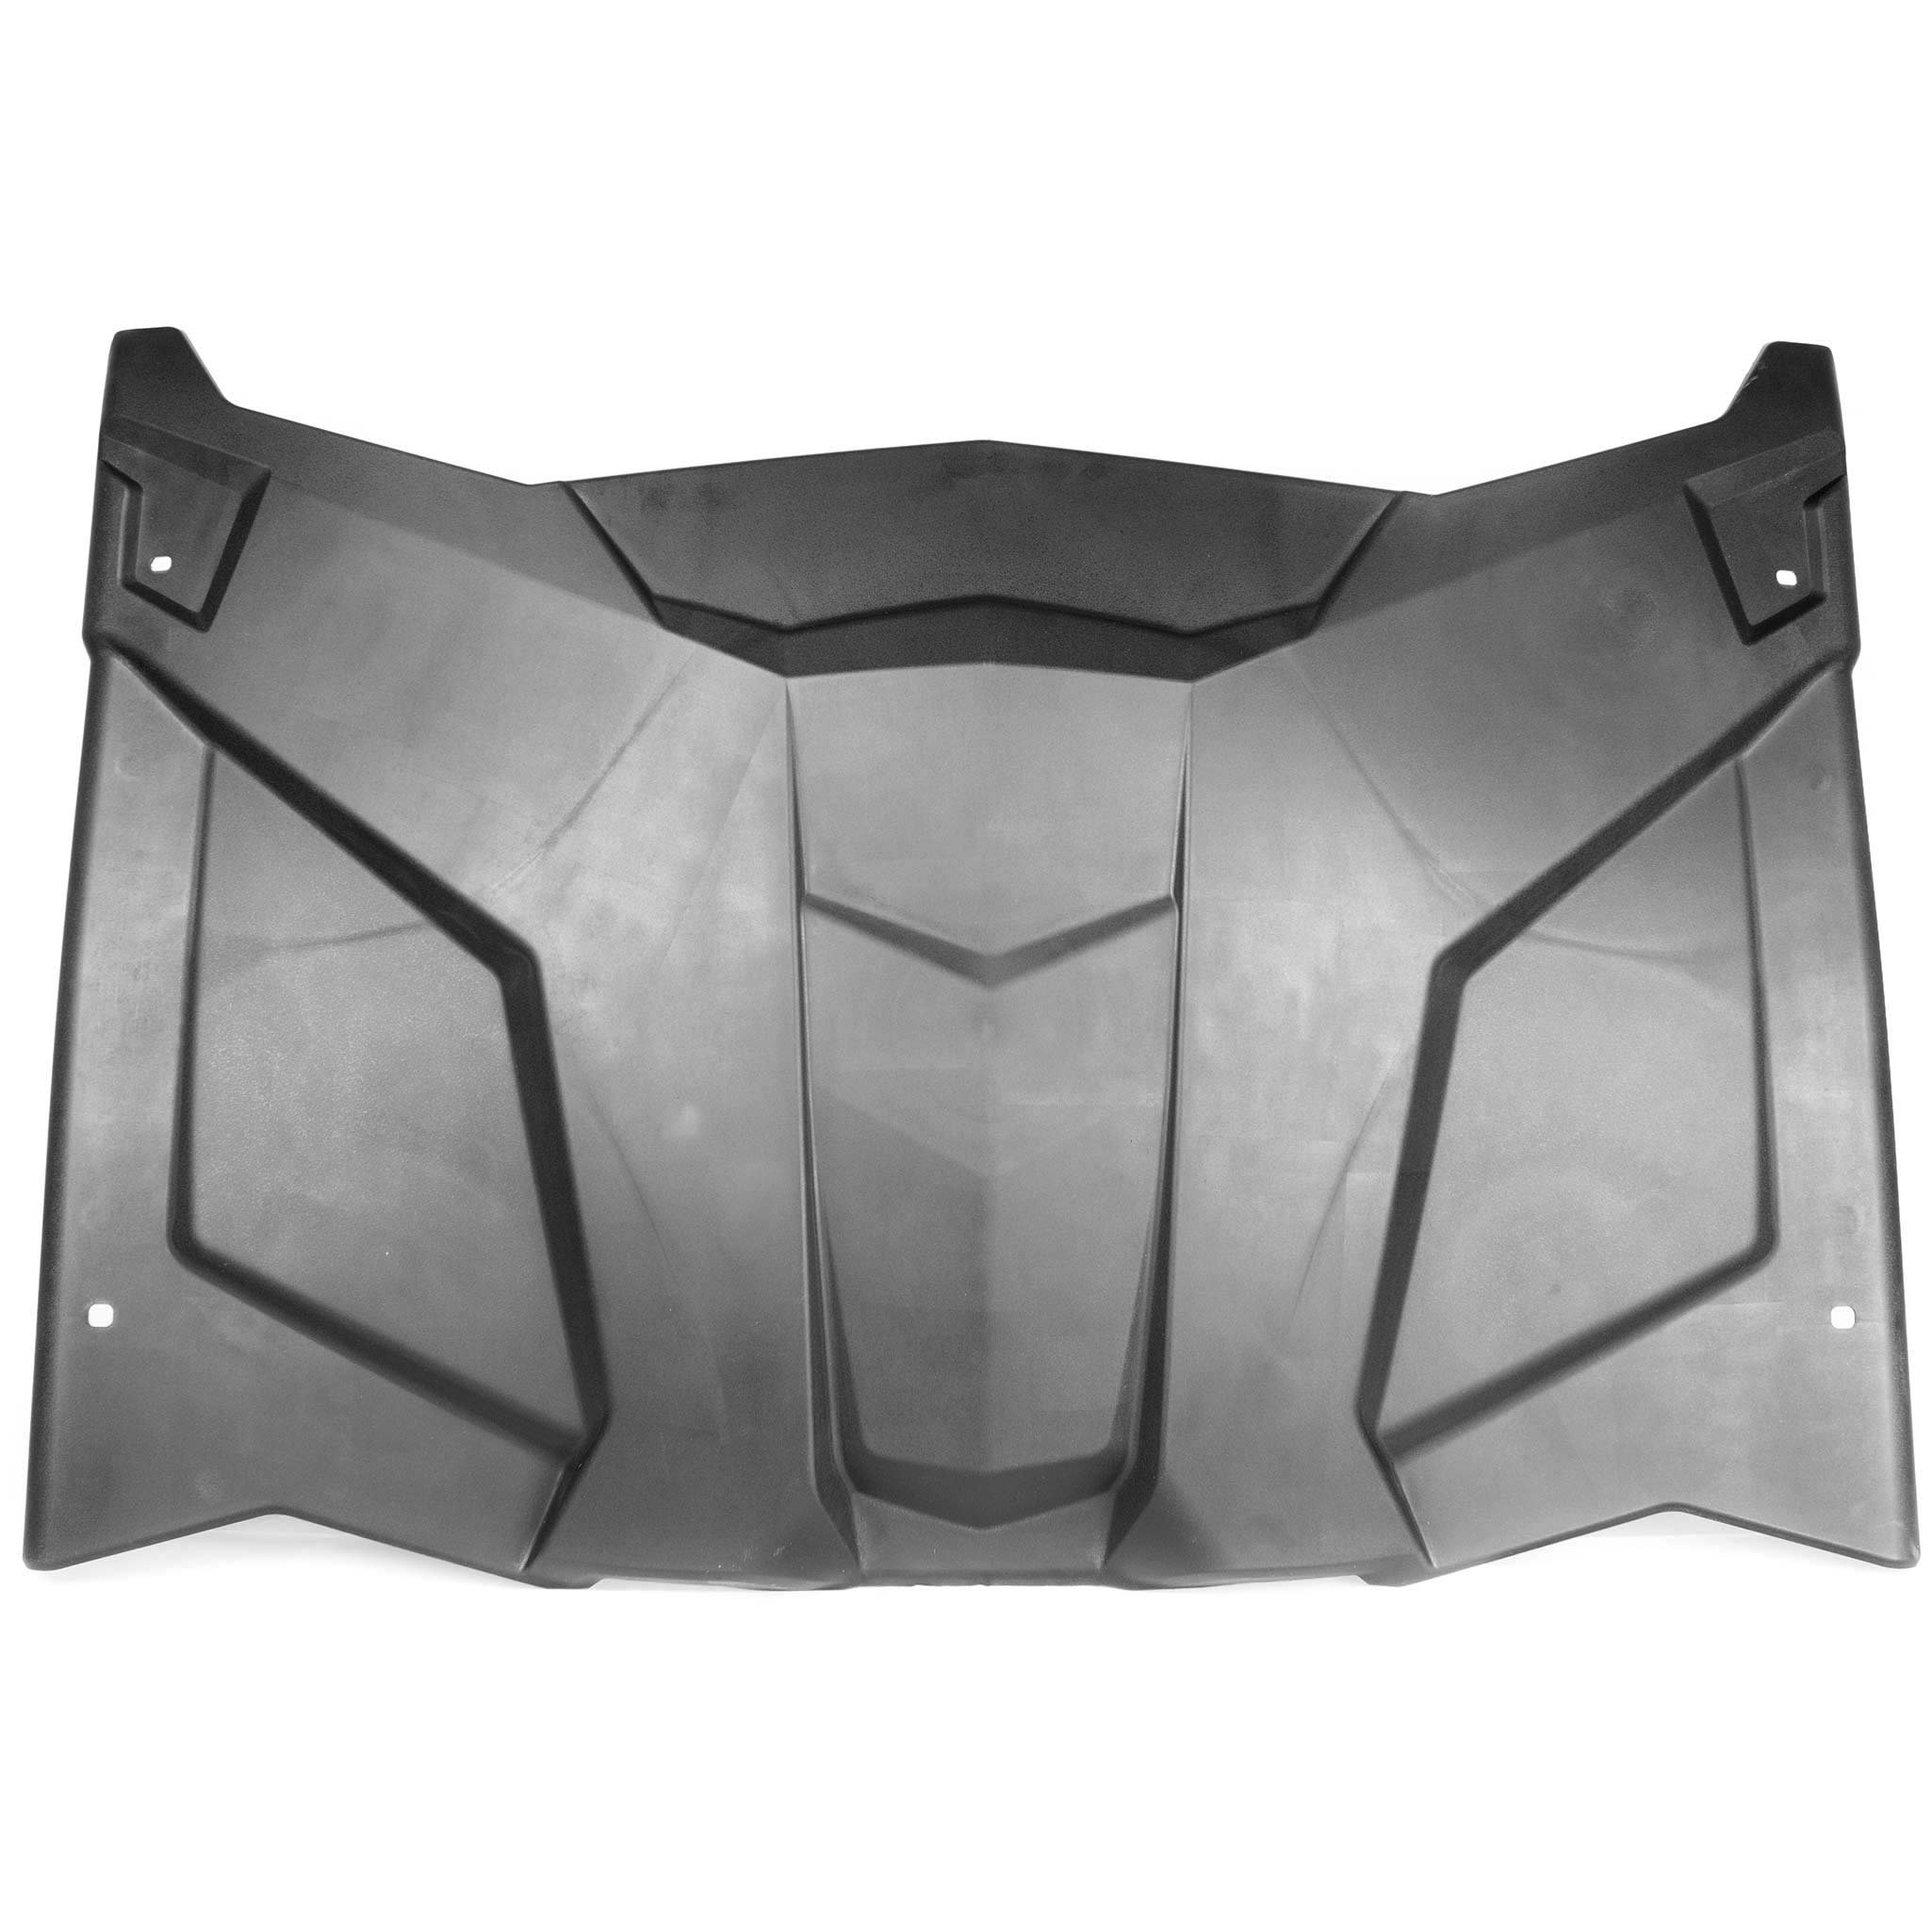 Black Polypropylene Sport Roof for Can-Am Maverick X3